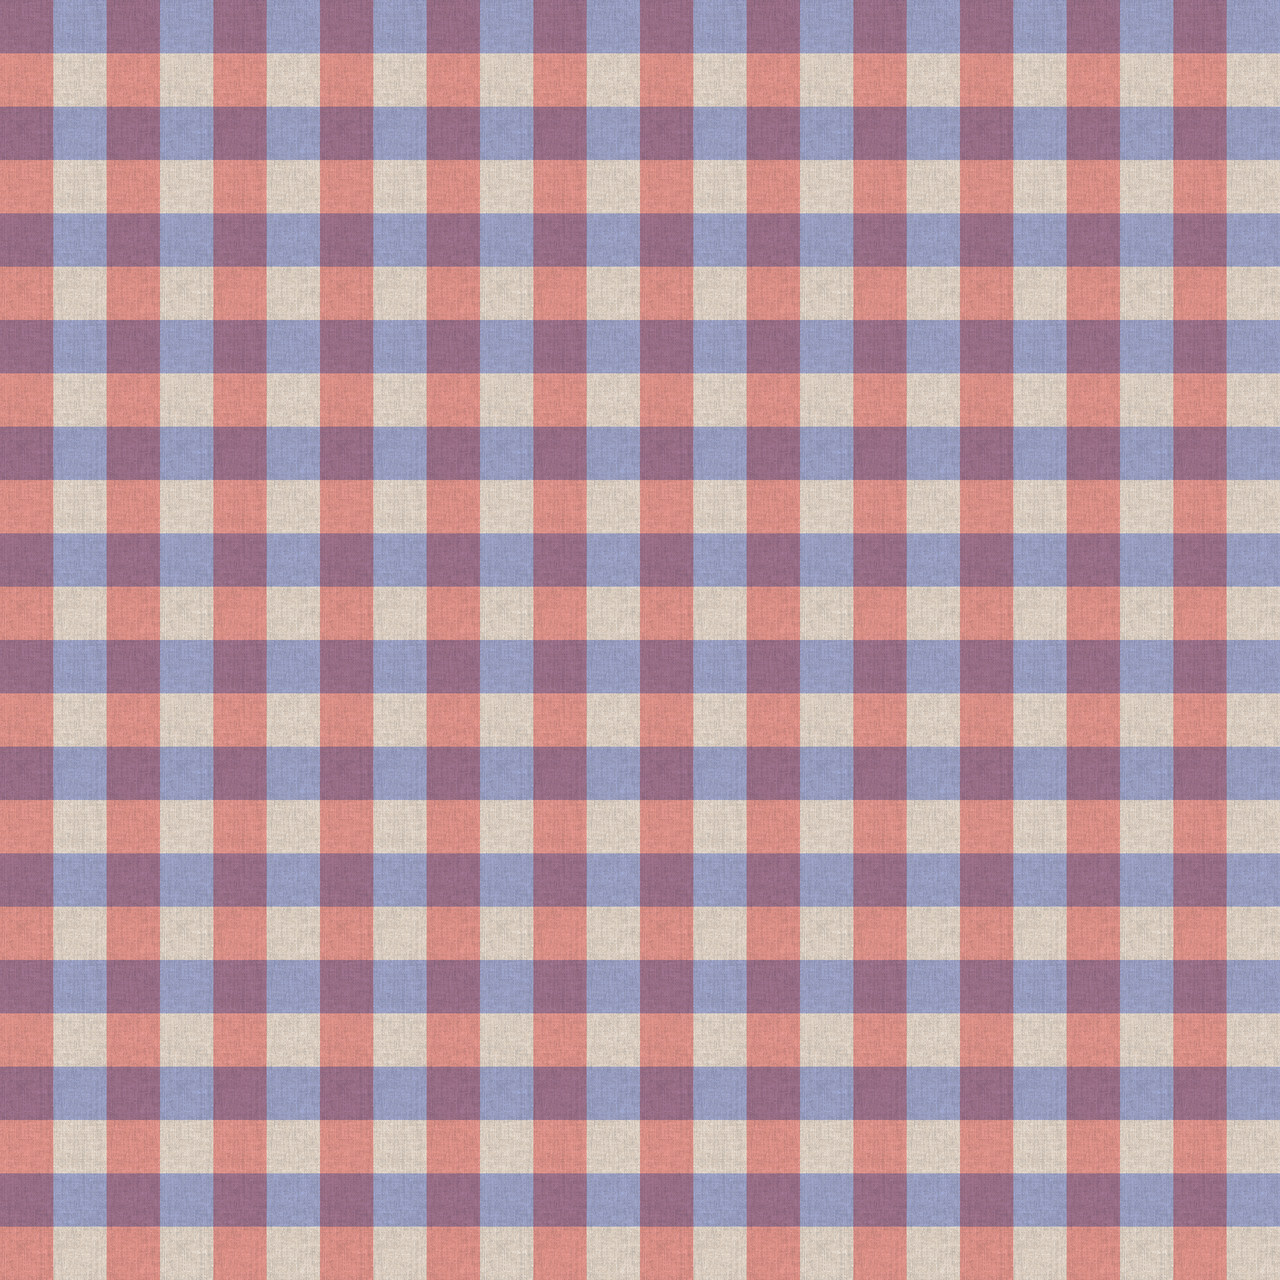 Terms Of Use >> Blue/Red Cloth Grid – Seamless Texture